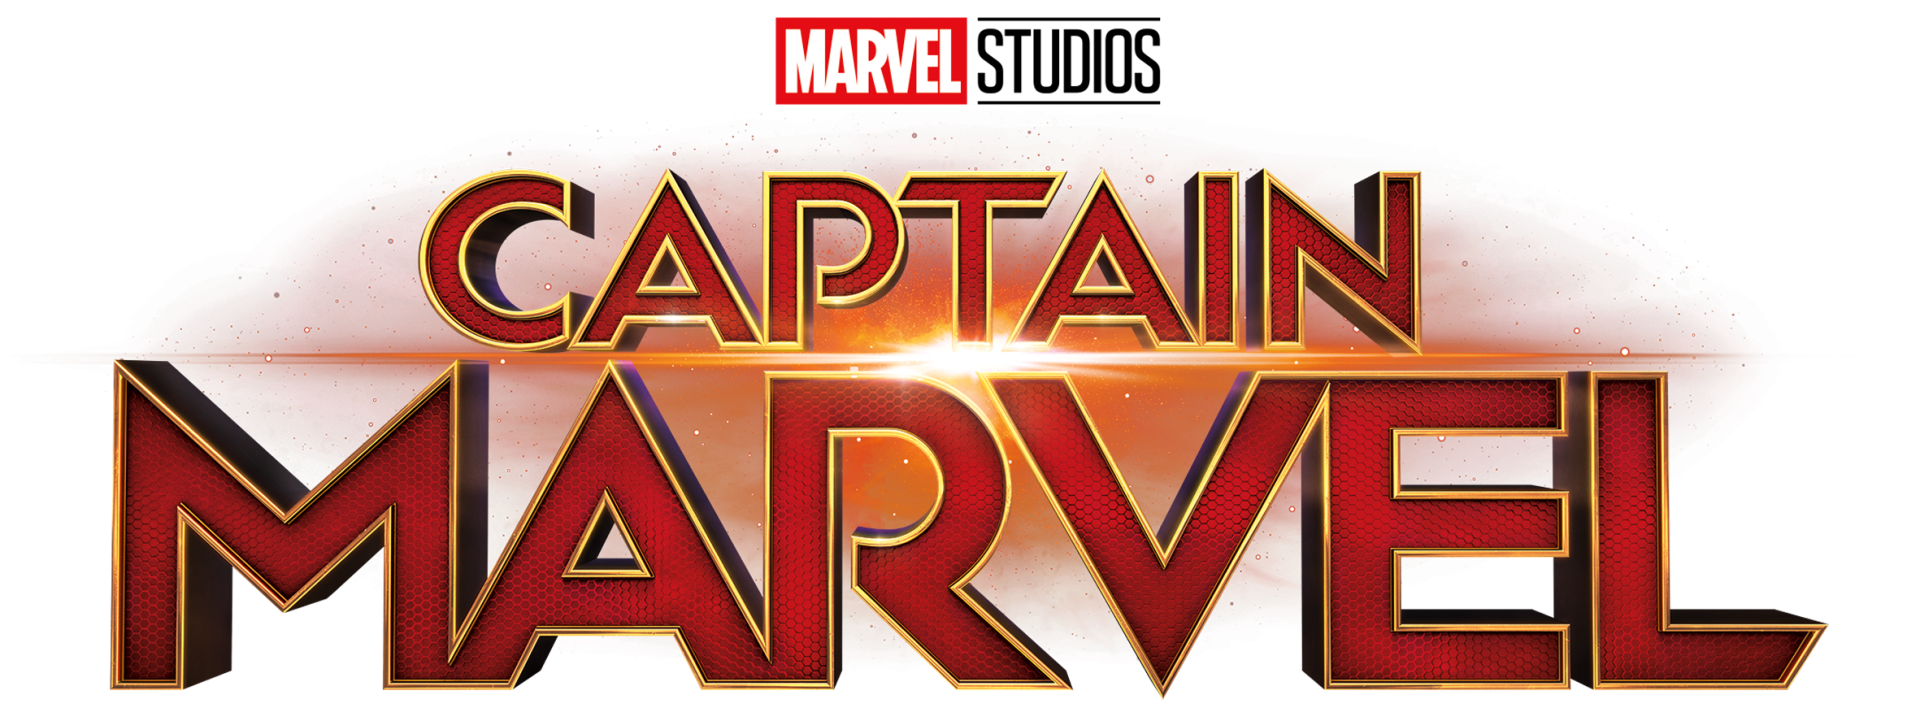 Captain marvel transparent 2018 logo 1